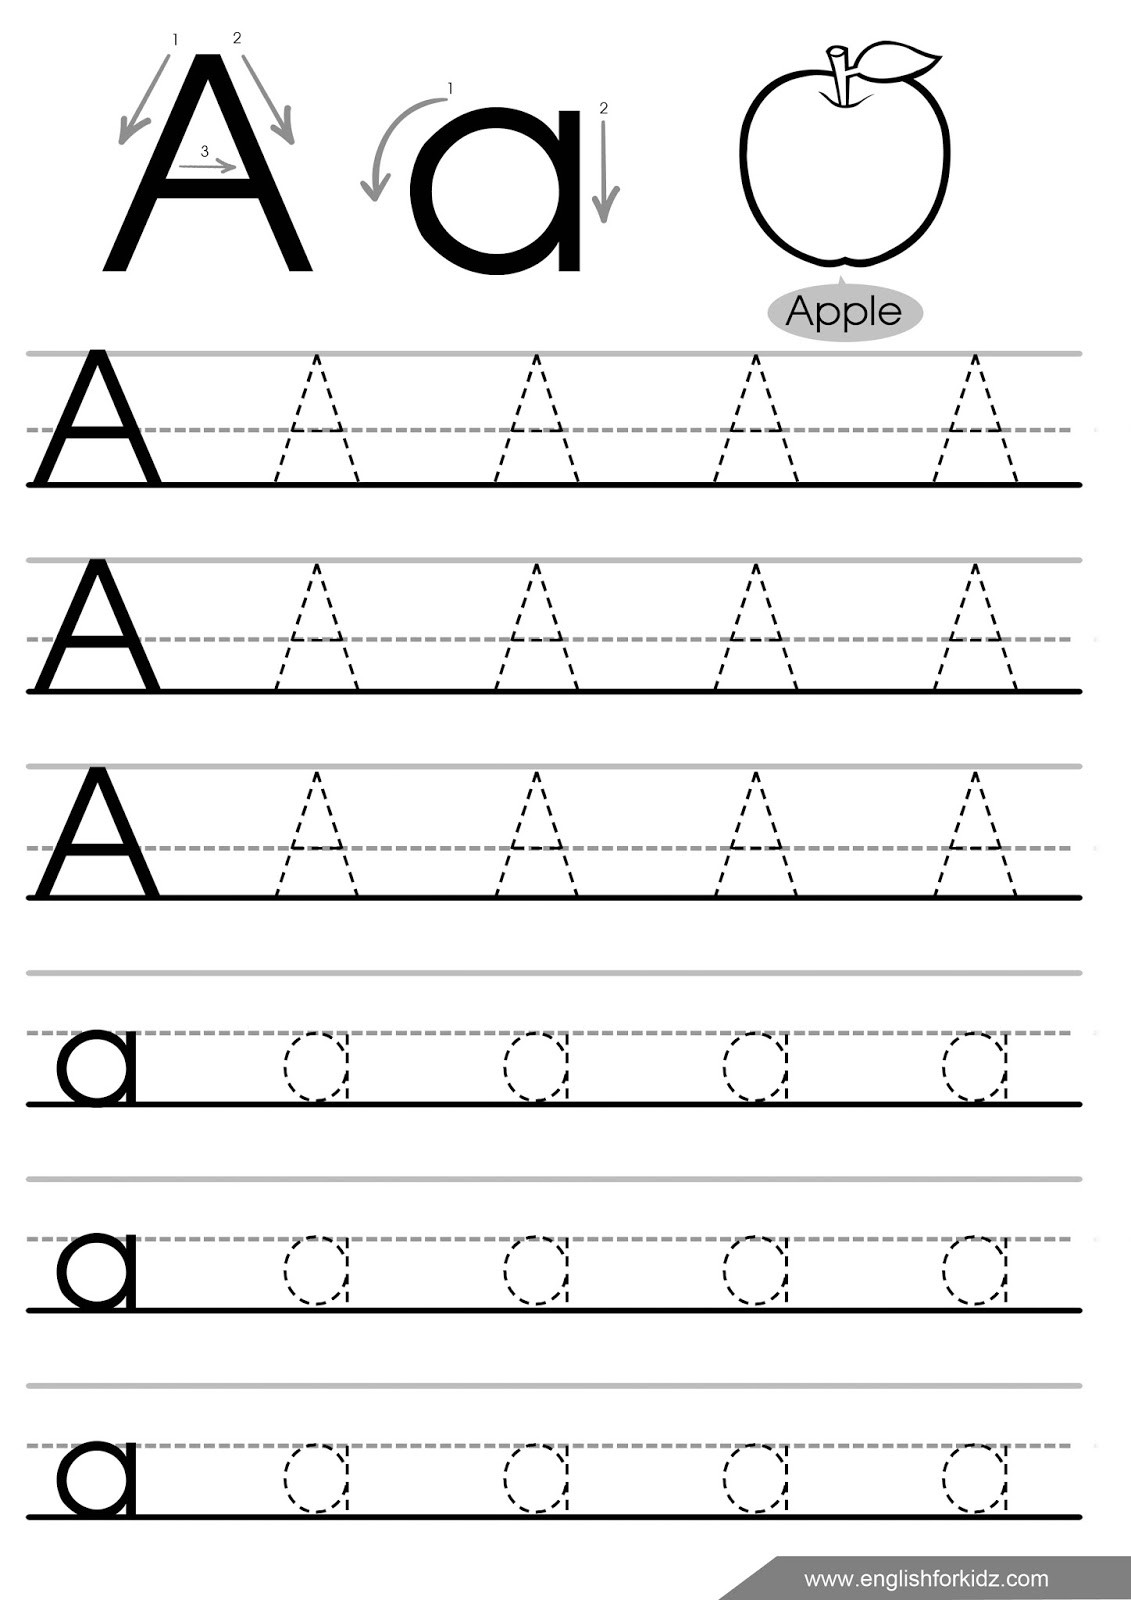 Alphabet Tracing Worksheets Printable Math Worksheet Letter Tracing Worksheet Name Practice